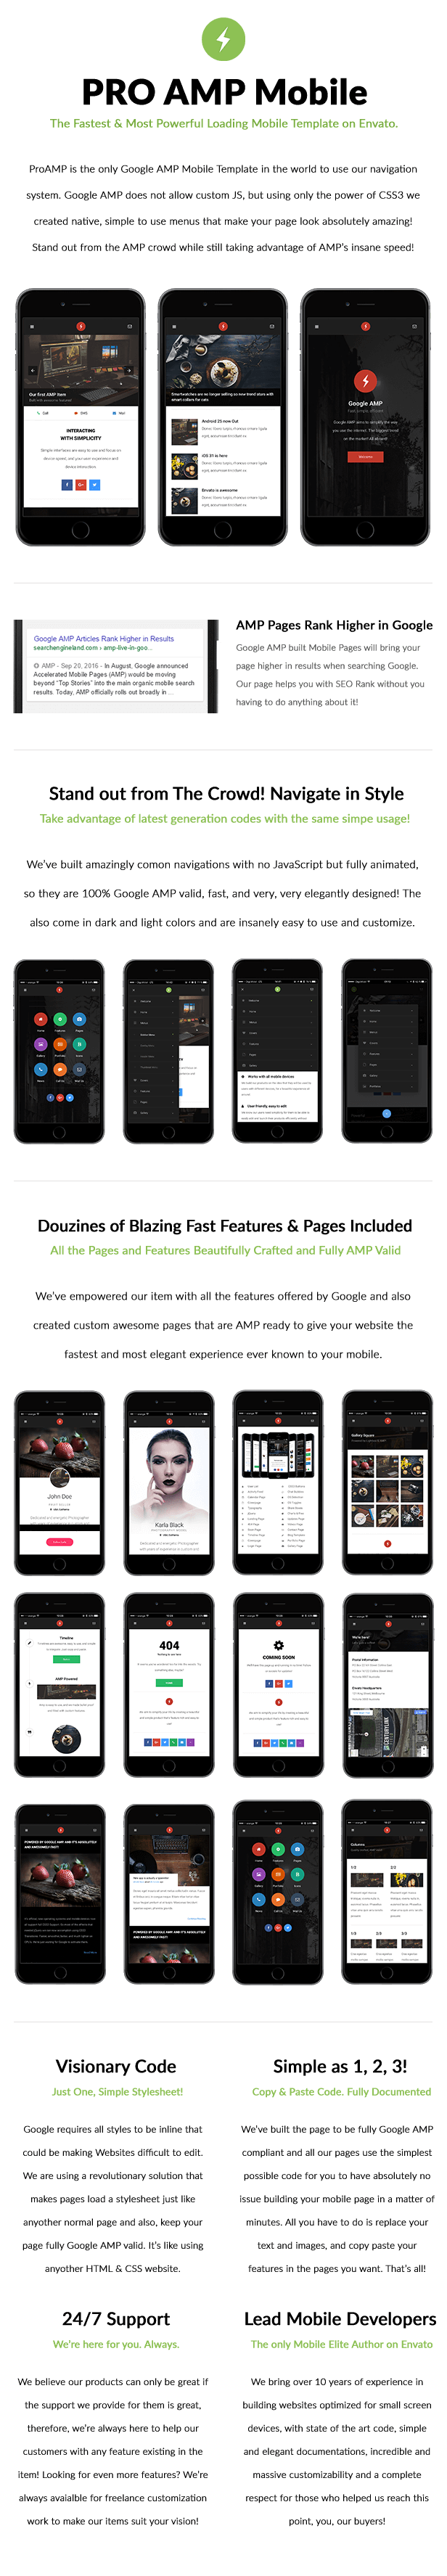 Mobile web design with Amp for google